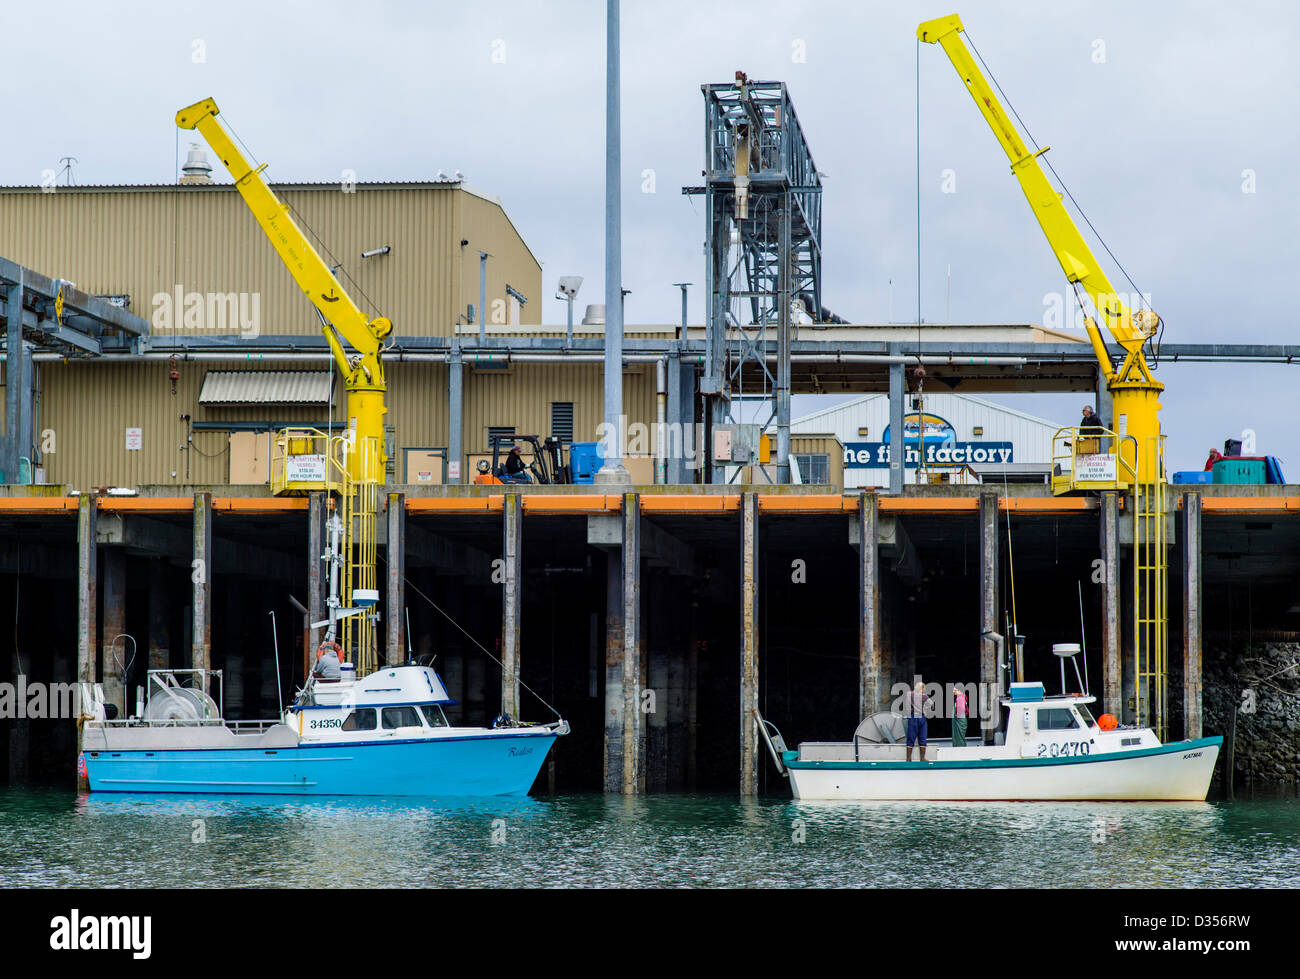 Commercial fishing boats unload their fresh catch of fish to